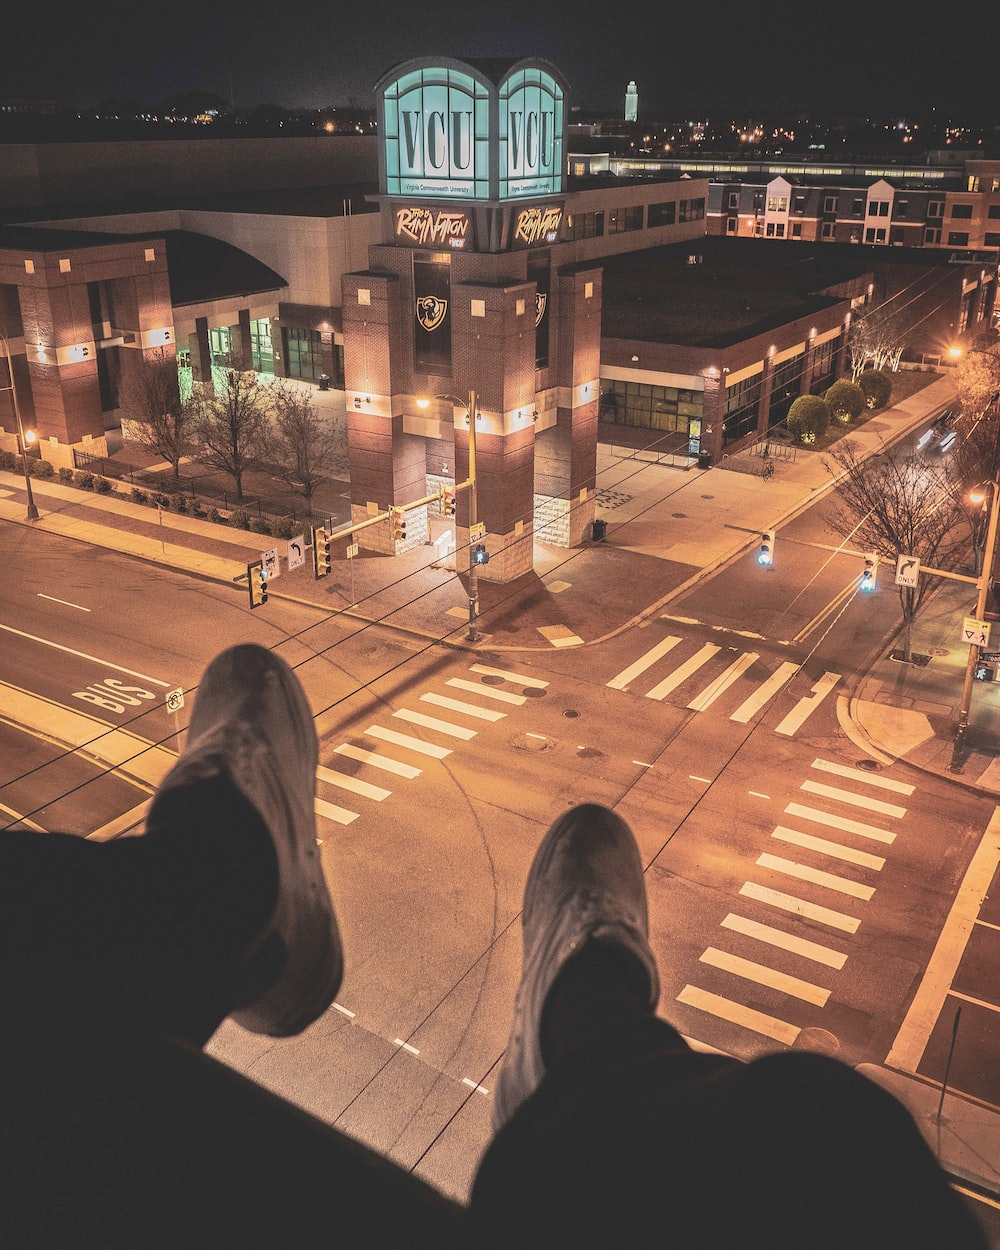 person sitting on top of building overlooking lighted street